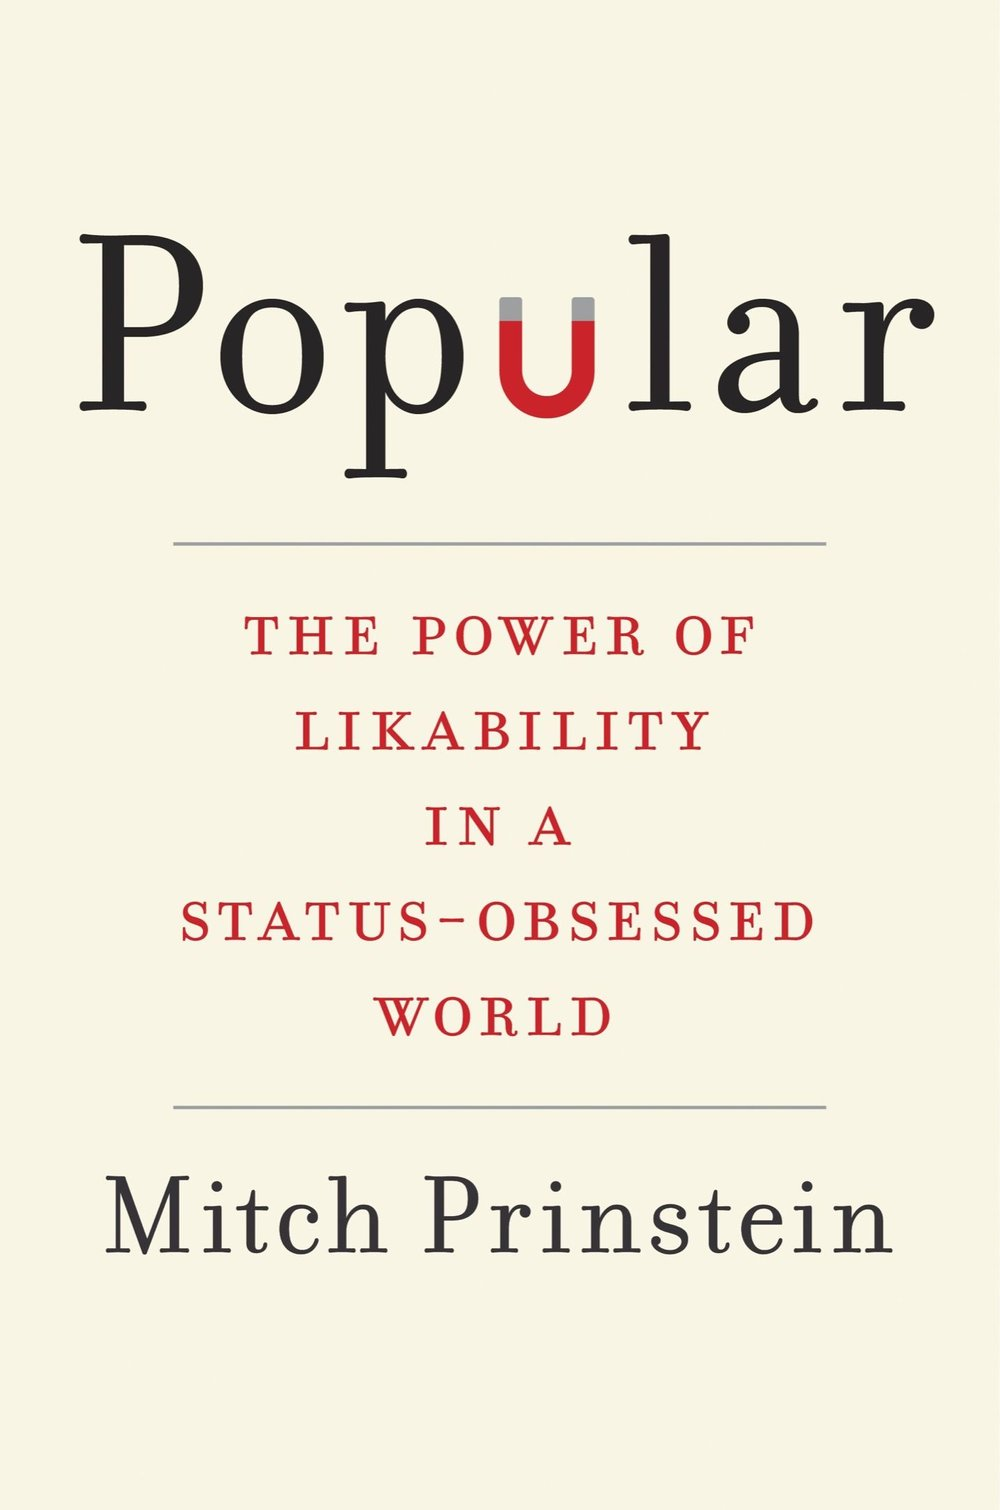 Popular - by Mitch Prinstein